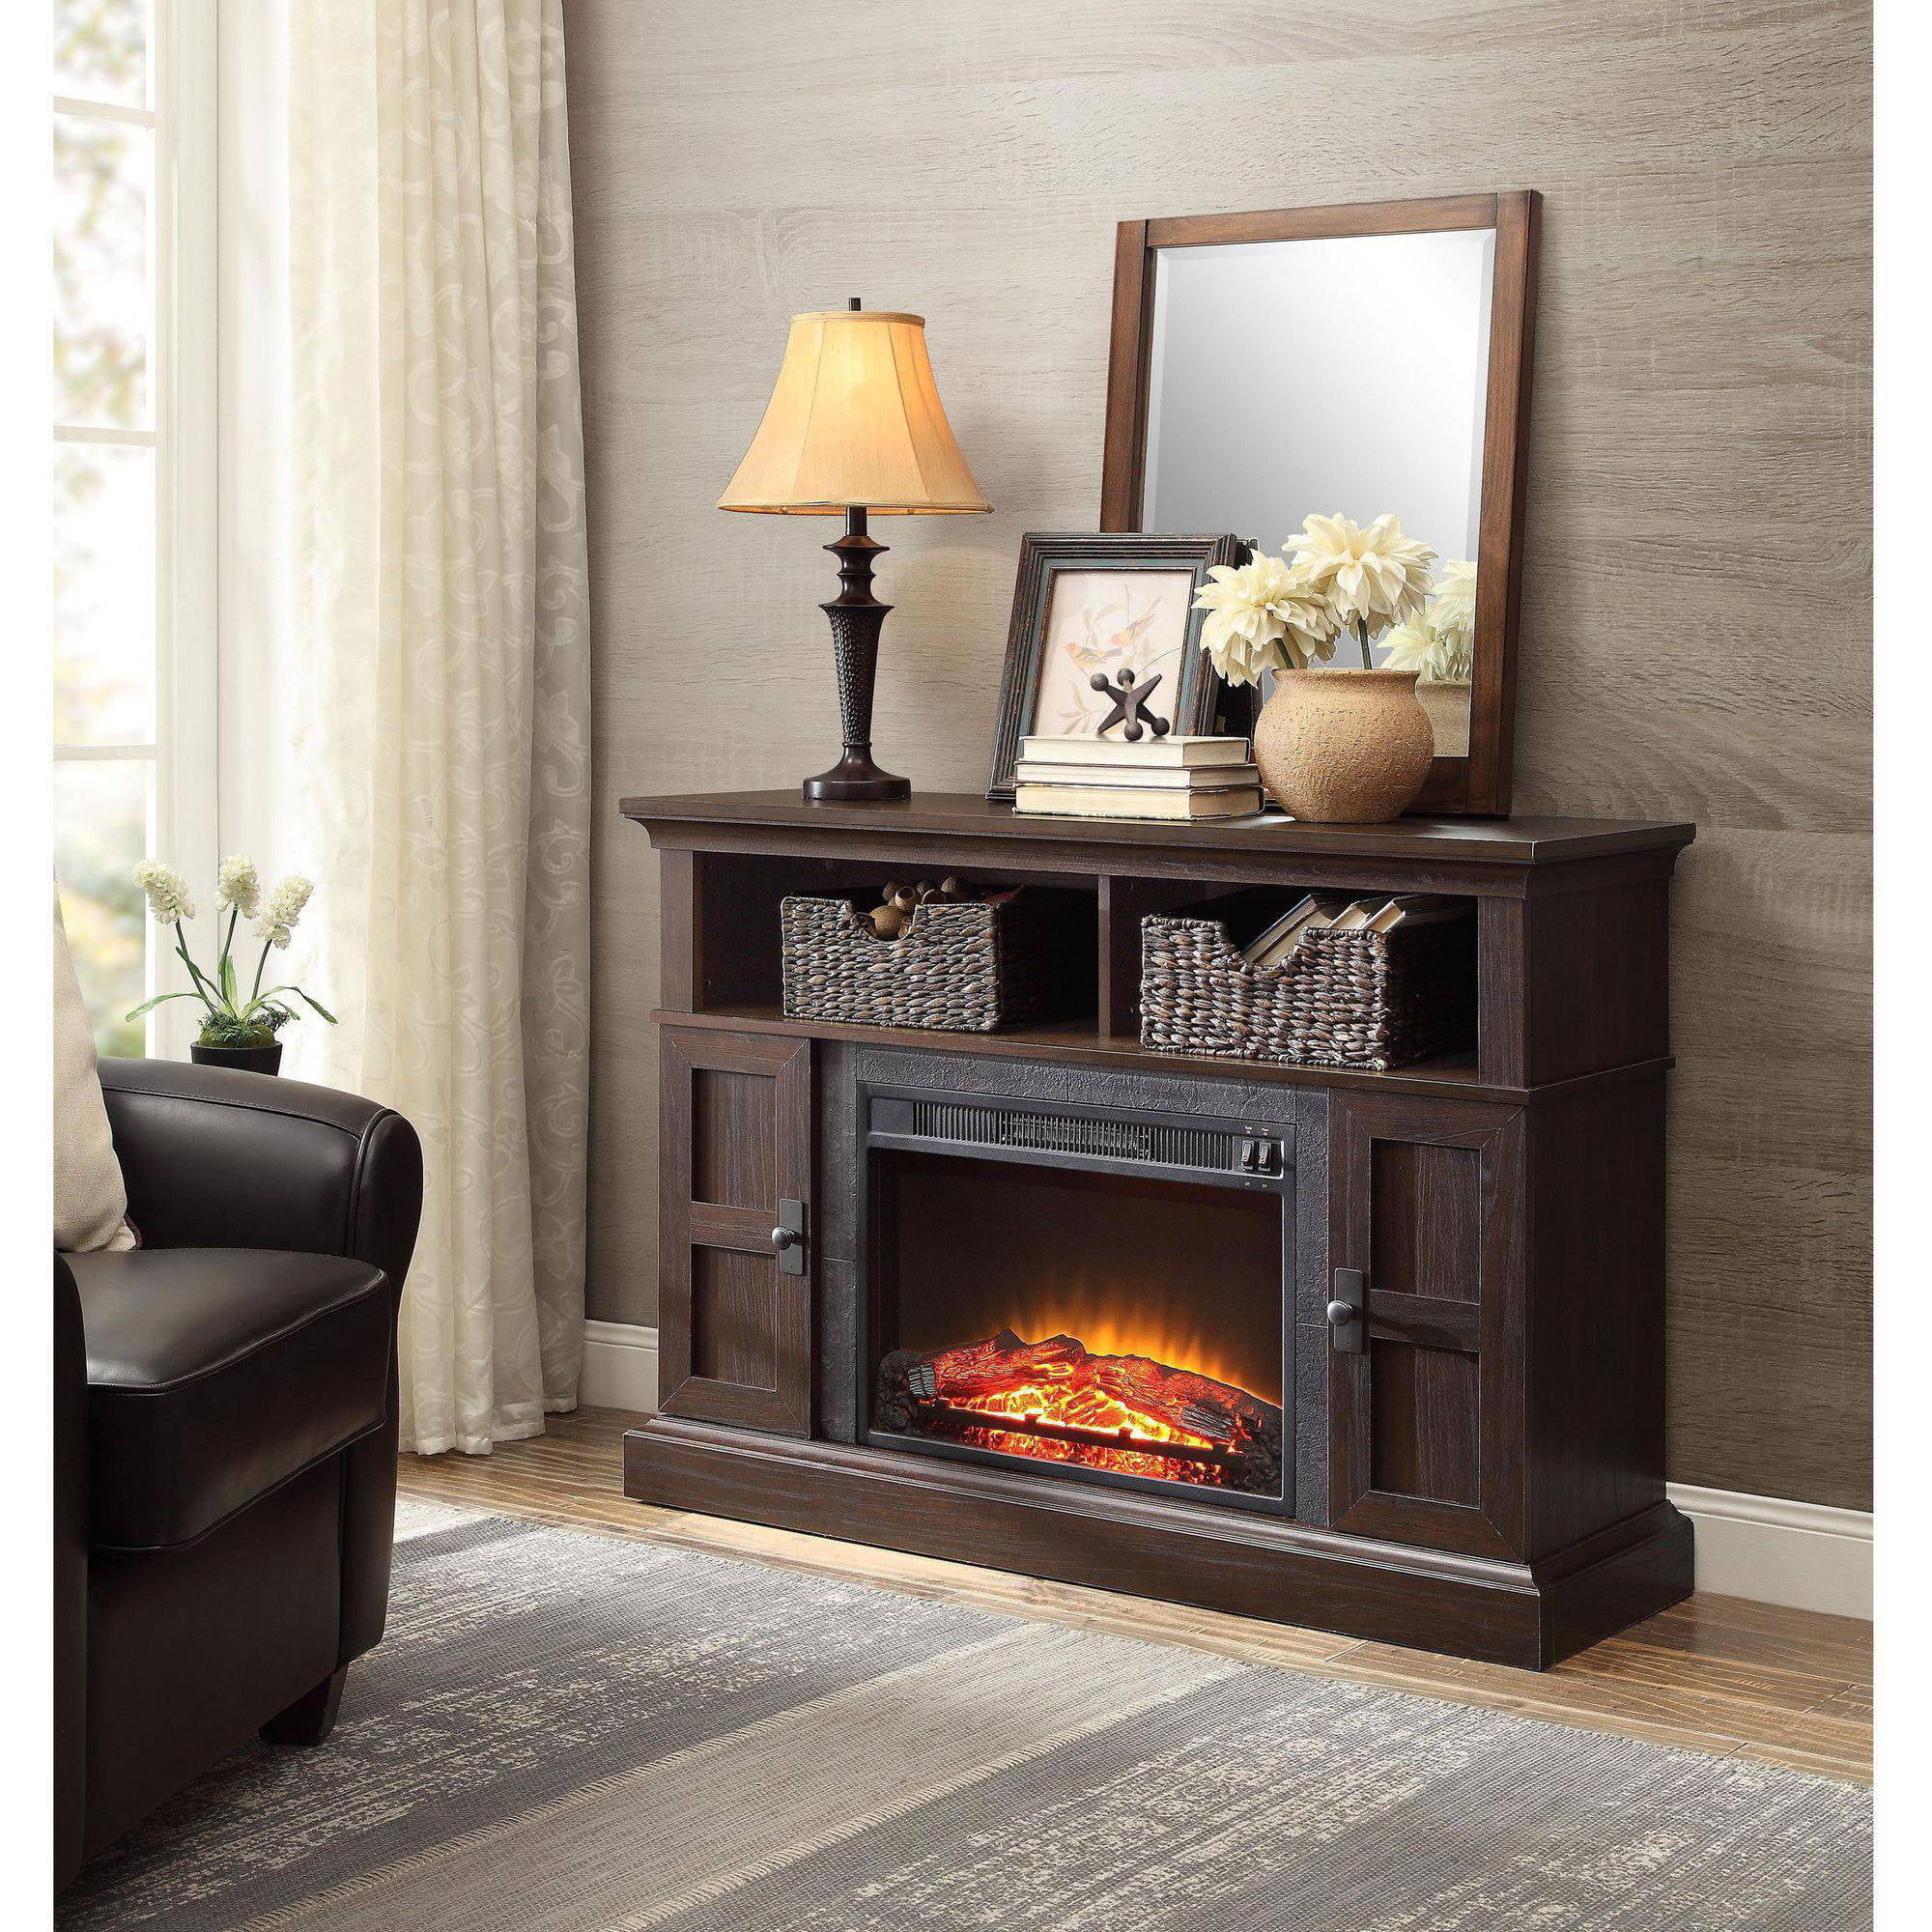 Whalen Media Fireplace For Your Home Television Stand Fits Tvs Up